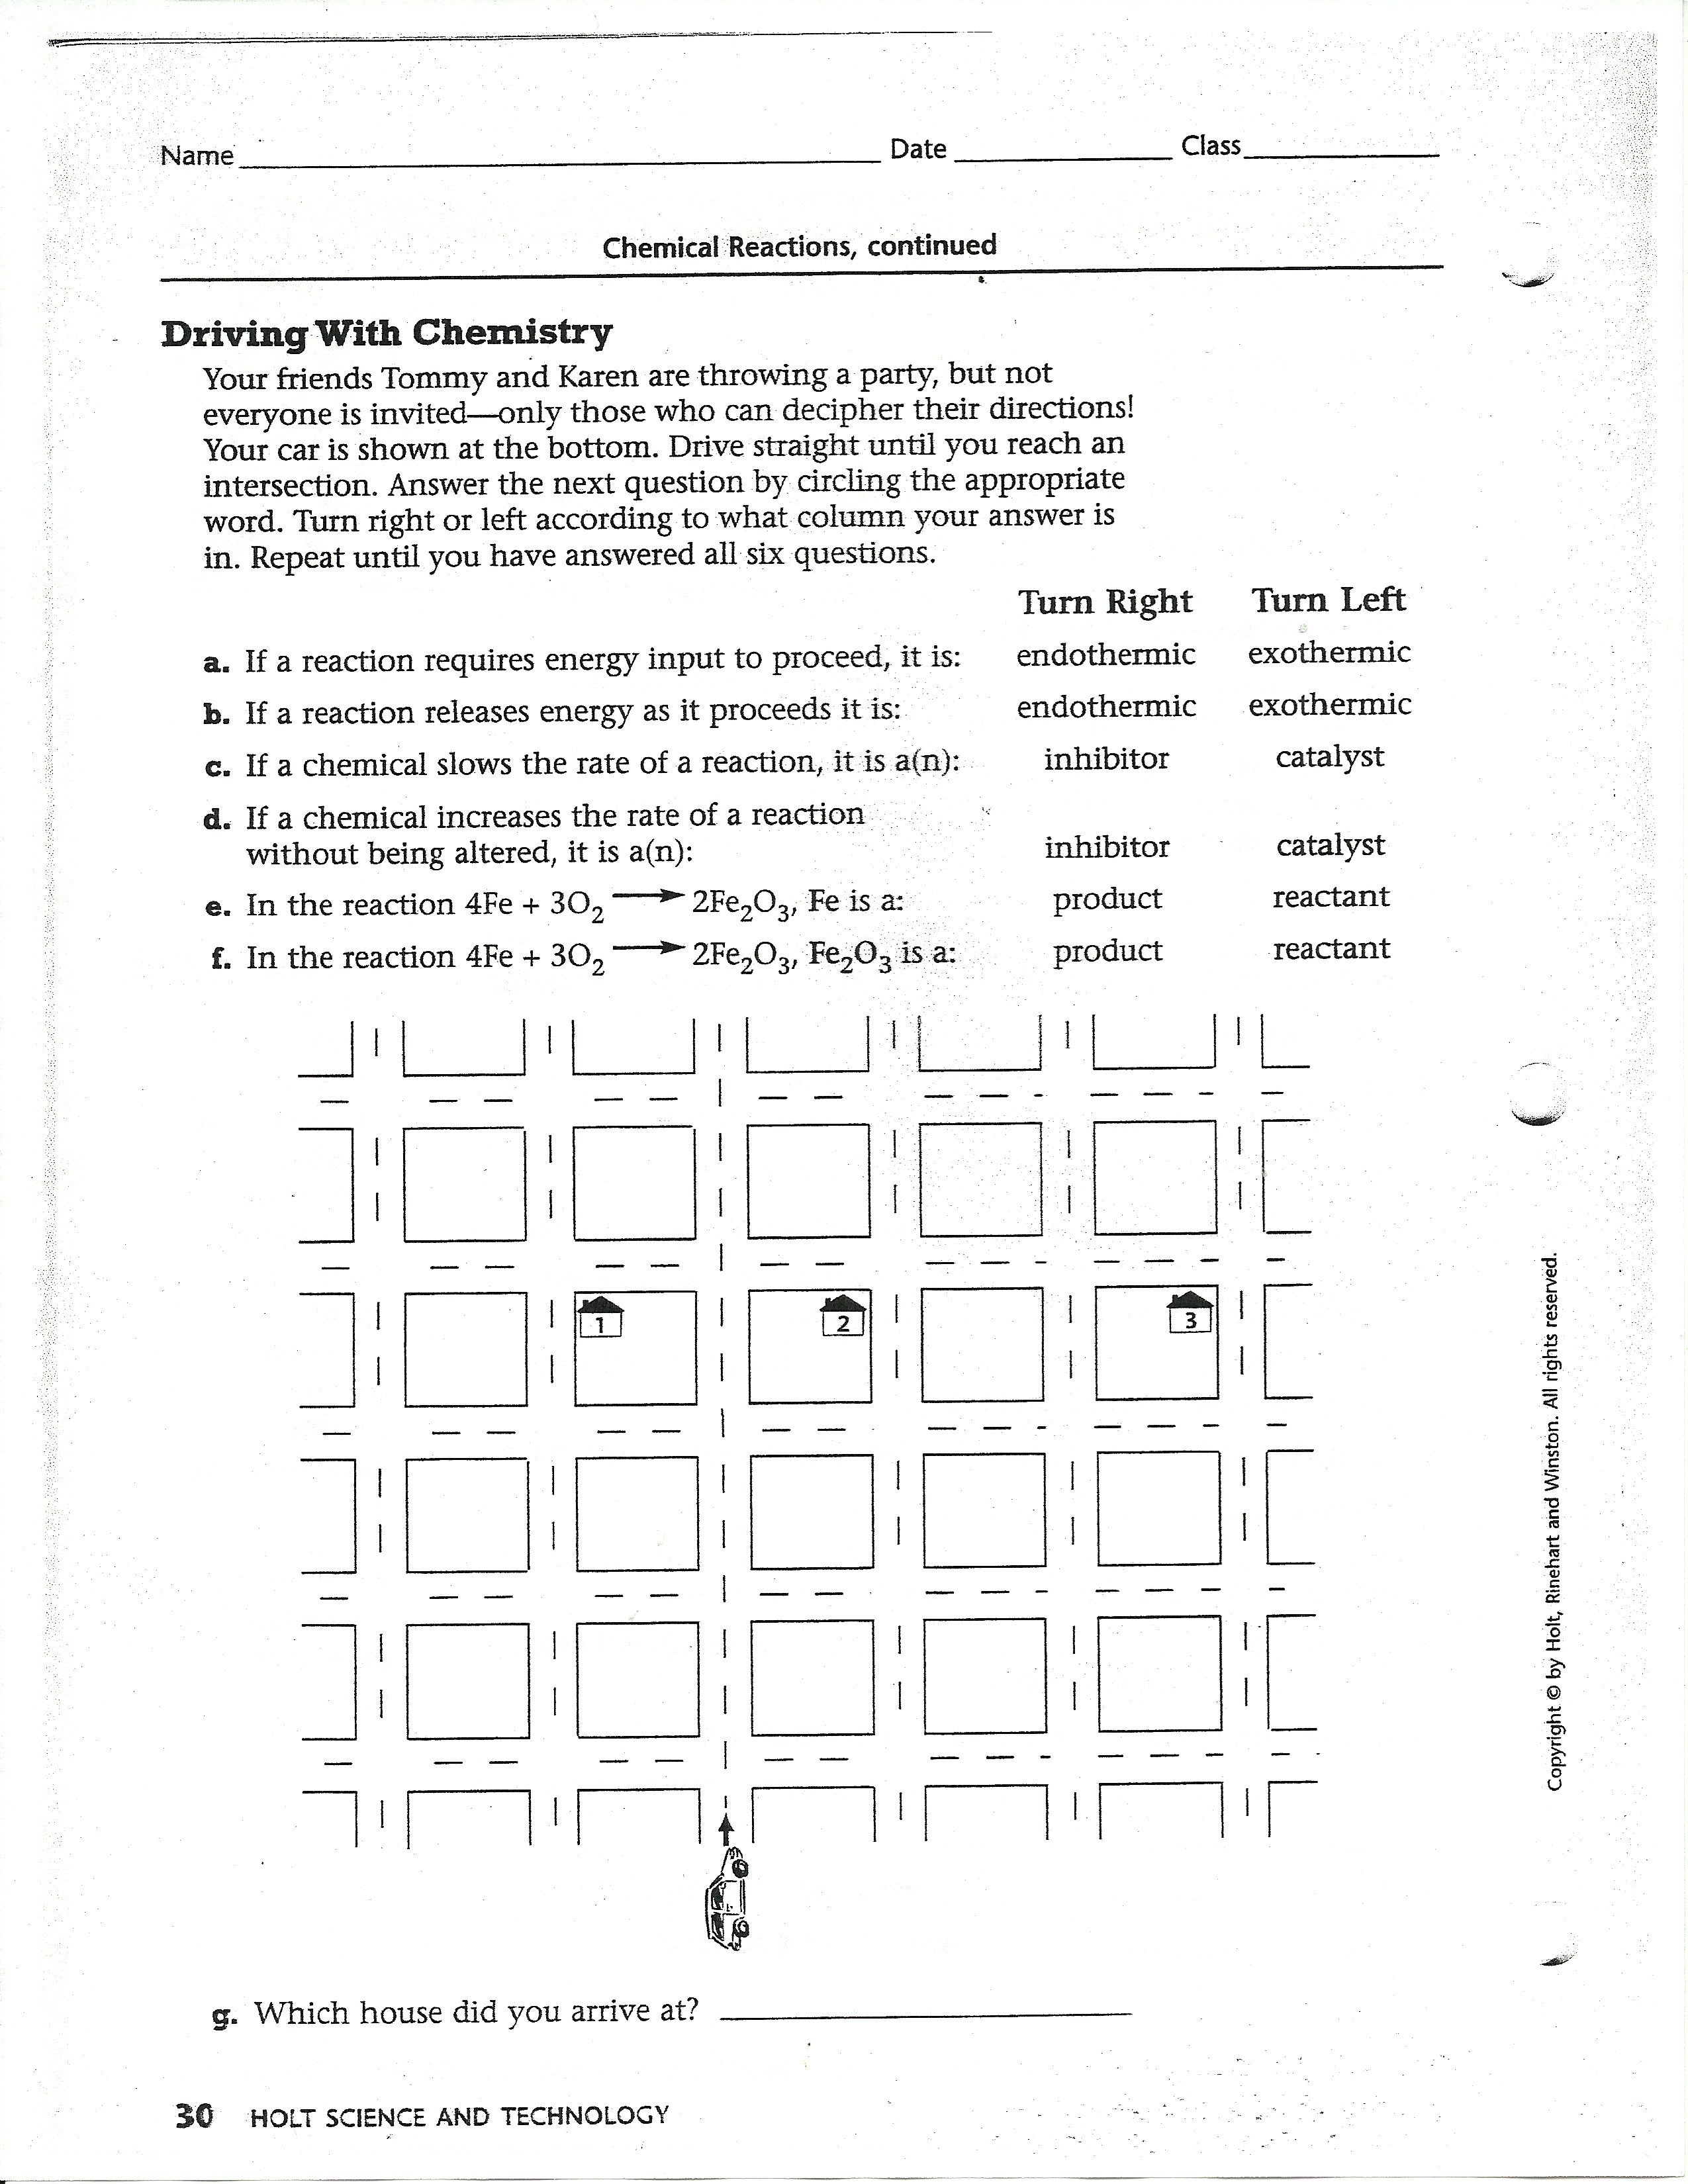 section holt science and technology worksheet answers section best free printable worksheets. Black Bedroom Furniture Sets. Home Design Ideas